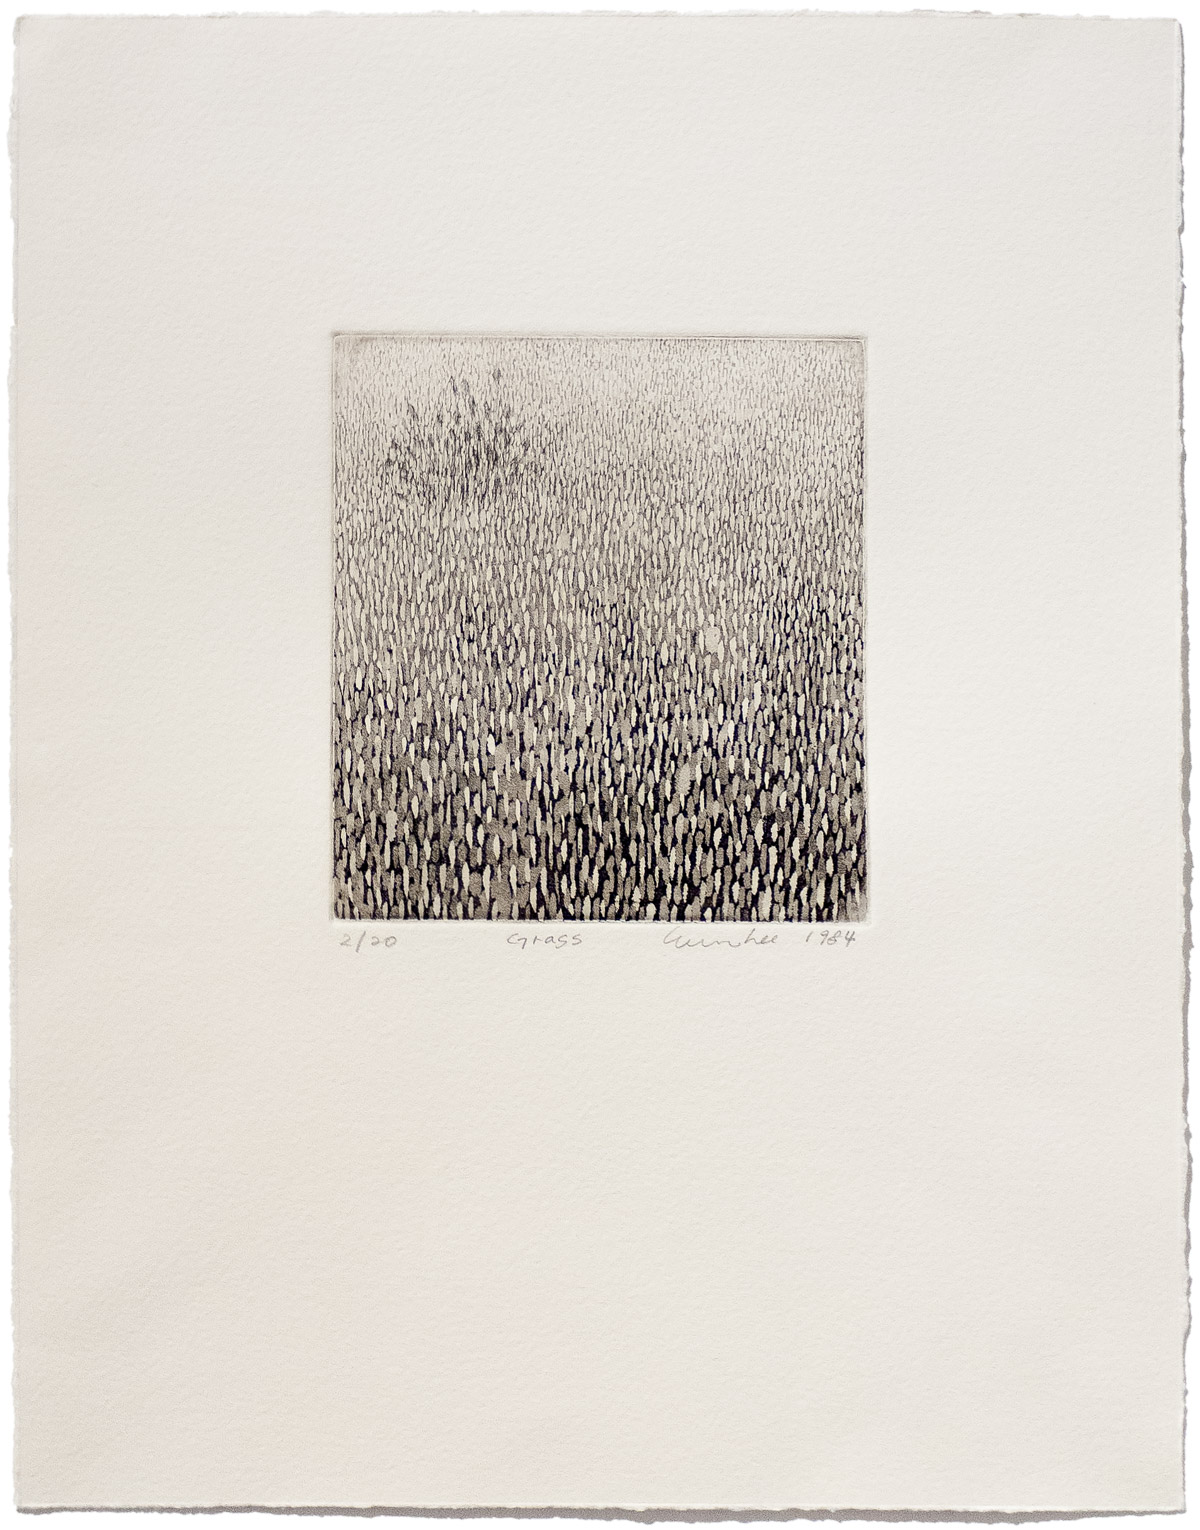 Soo Im Lee, Grass, 1984, limited-edition etching on paper